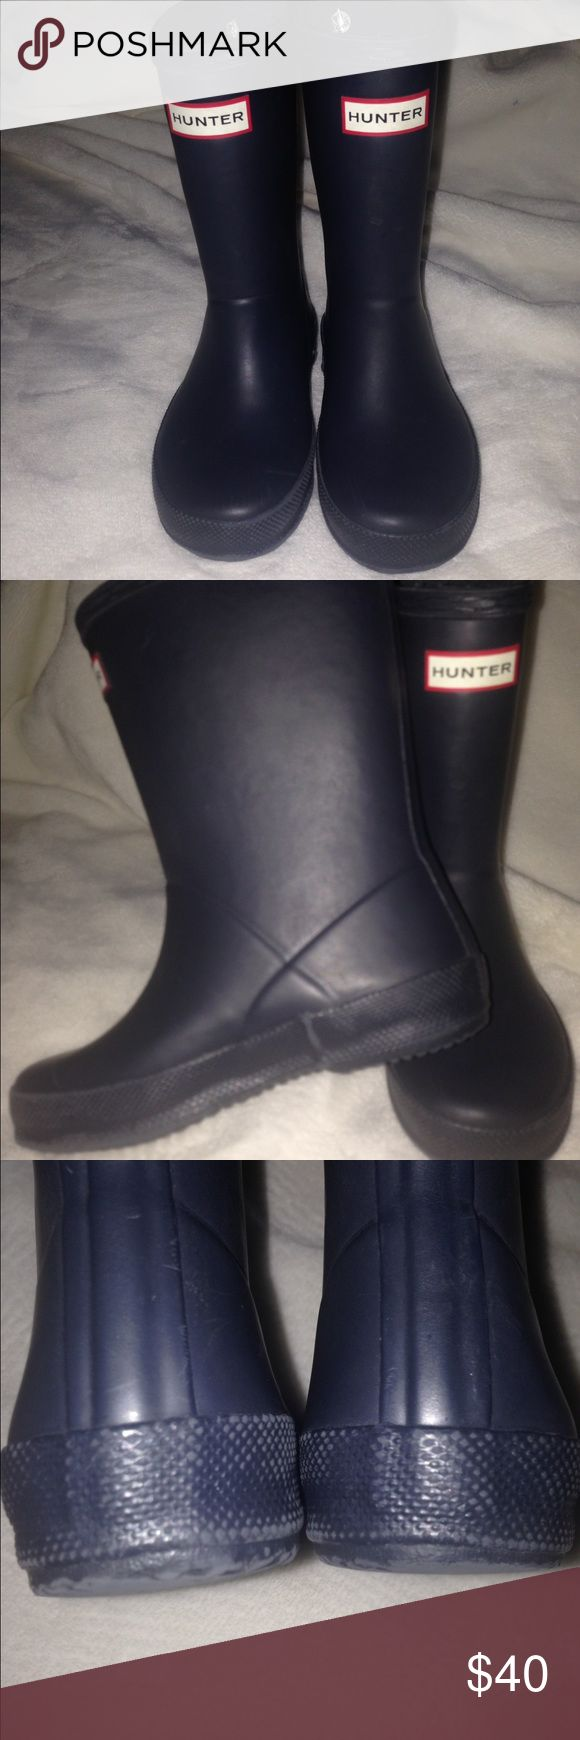 hunter boots bundle with hunter socks Good condition over all with little wear on heel and white socks (small 8-10) are in great condition... do have box for boots Hunter Boots Shoes Rain & Snow Boots